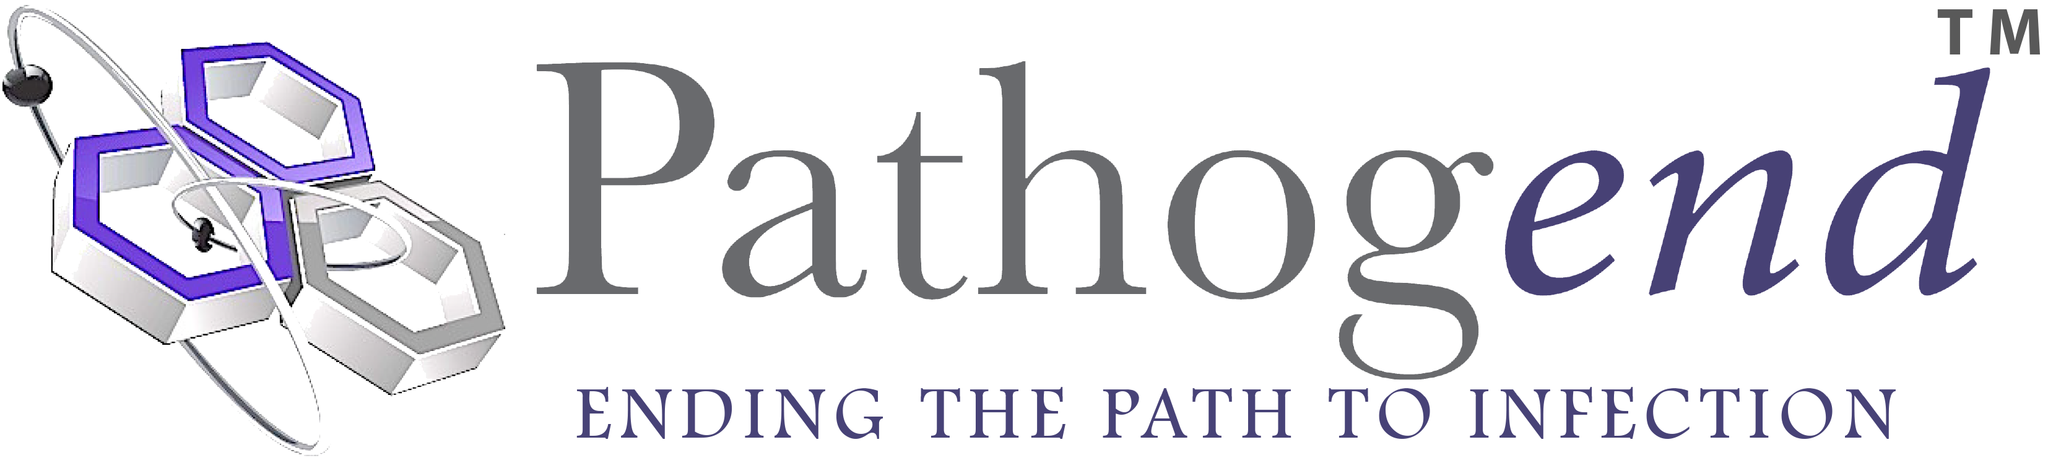 pathogend-logo-new-trans-copy.png